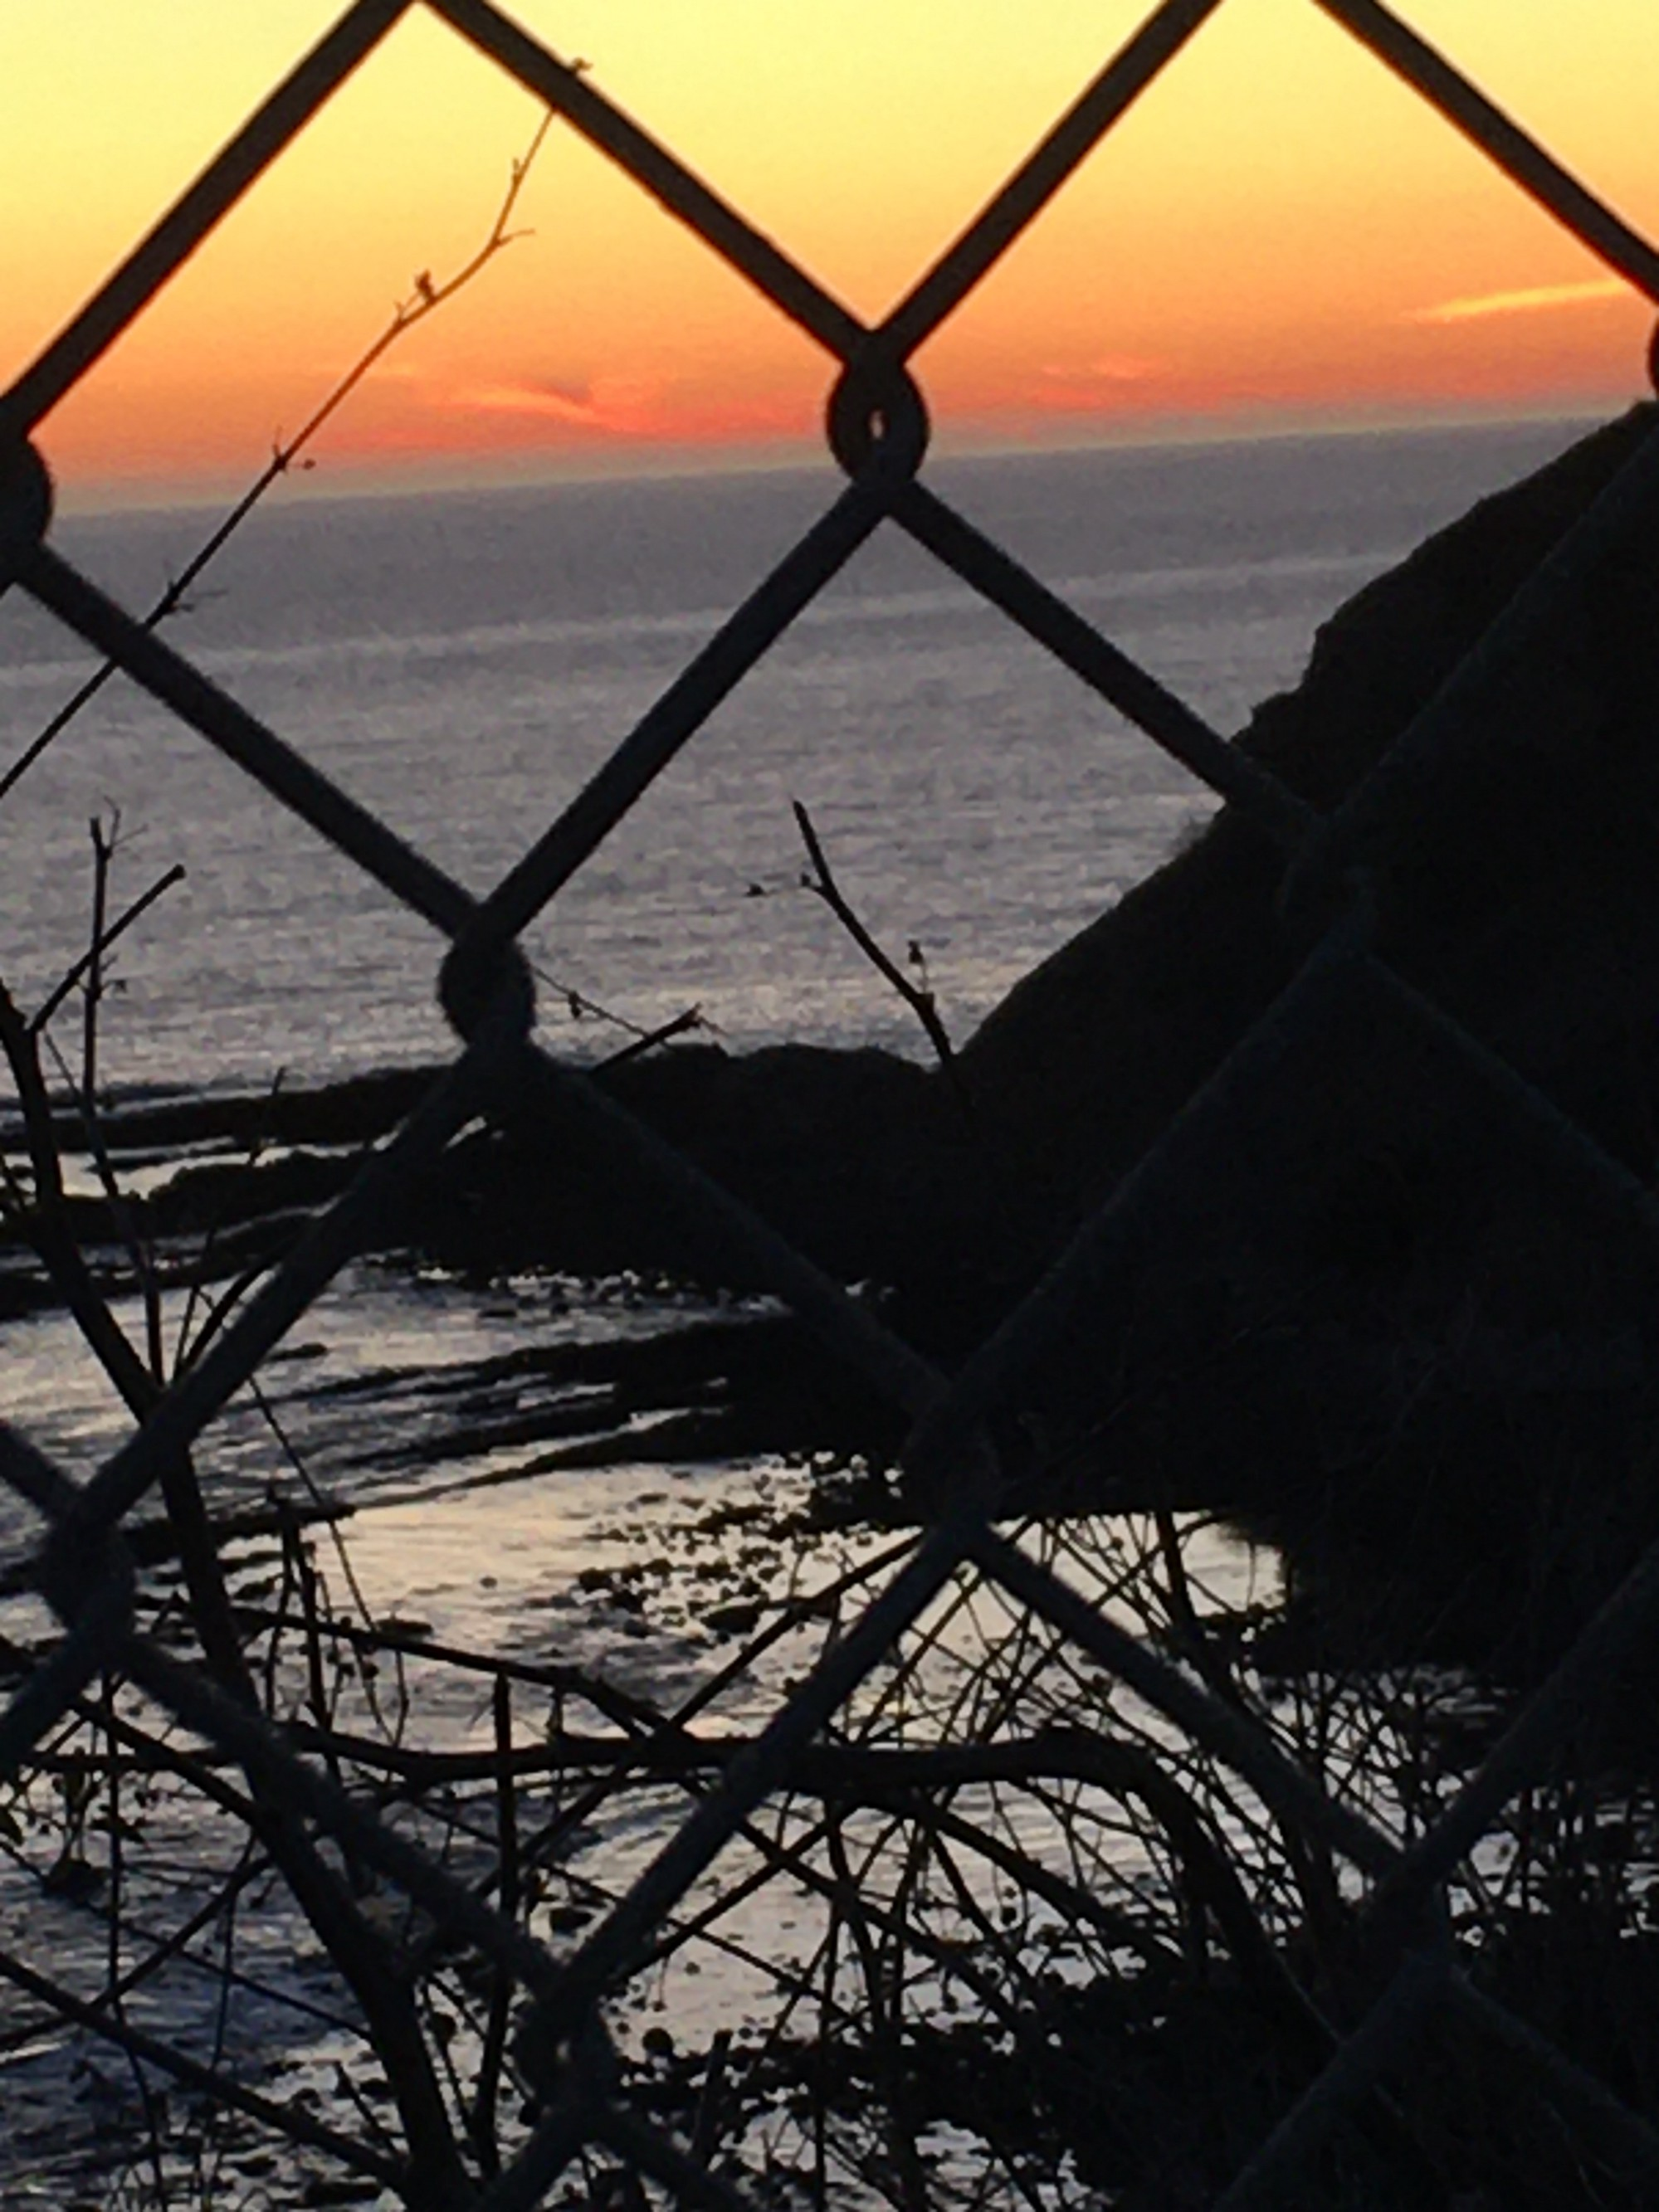 The ocean at sunset, orange layer below yellow layer, seen from behind a chain linked fence. In the foreground right is a hall, to the left of it sticks.